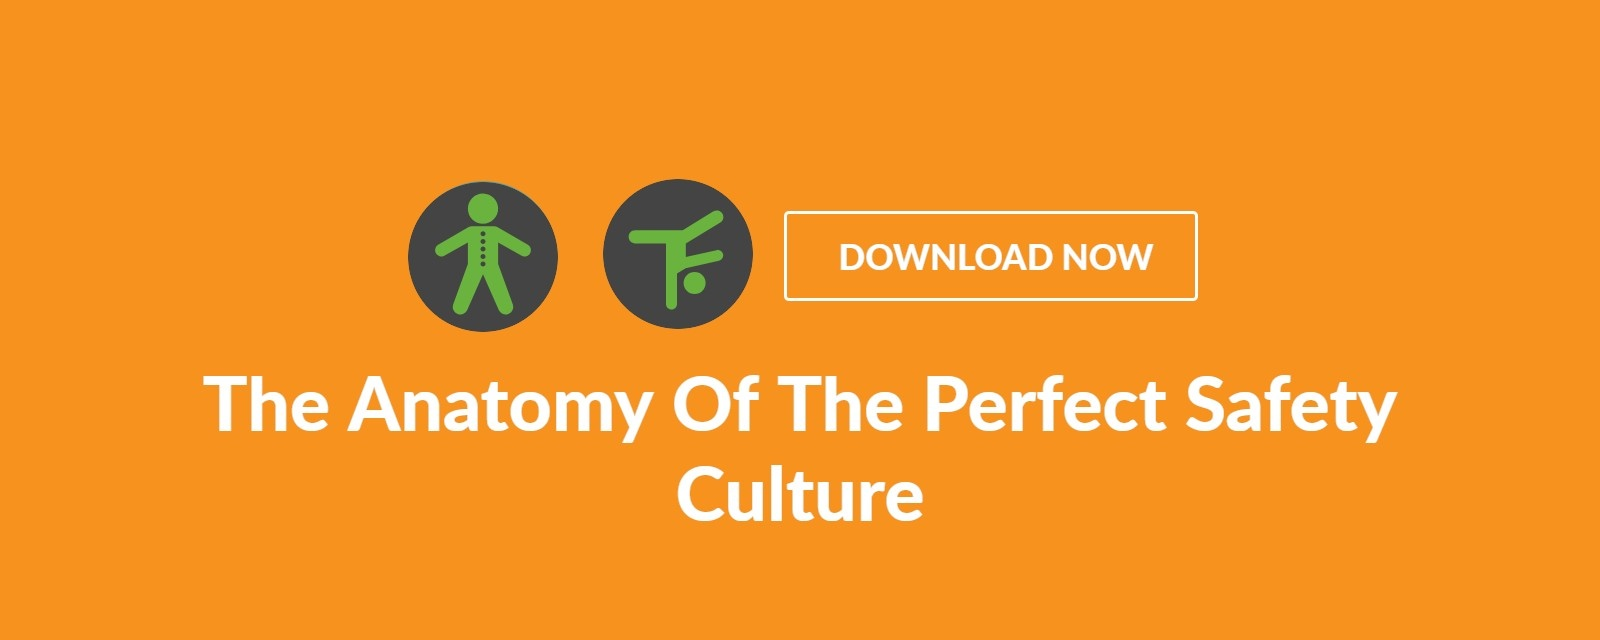 the anatomy of the perfect safety culture